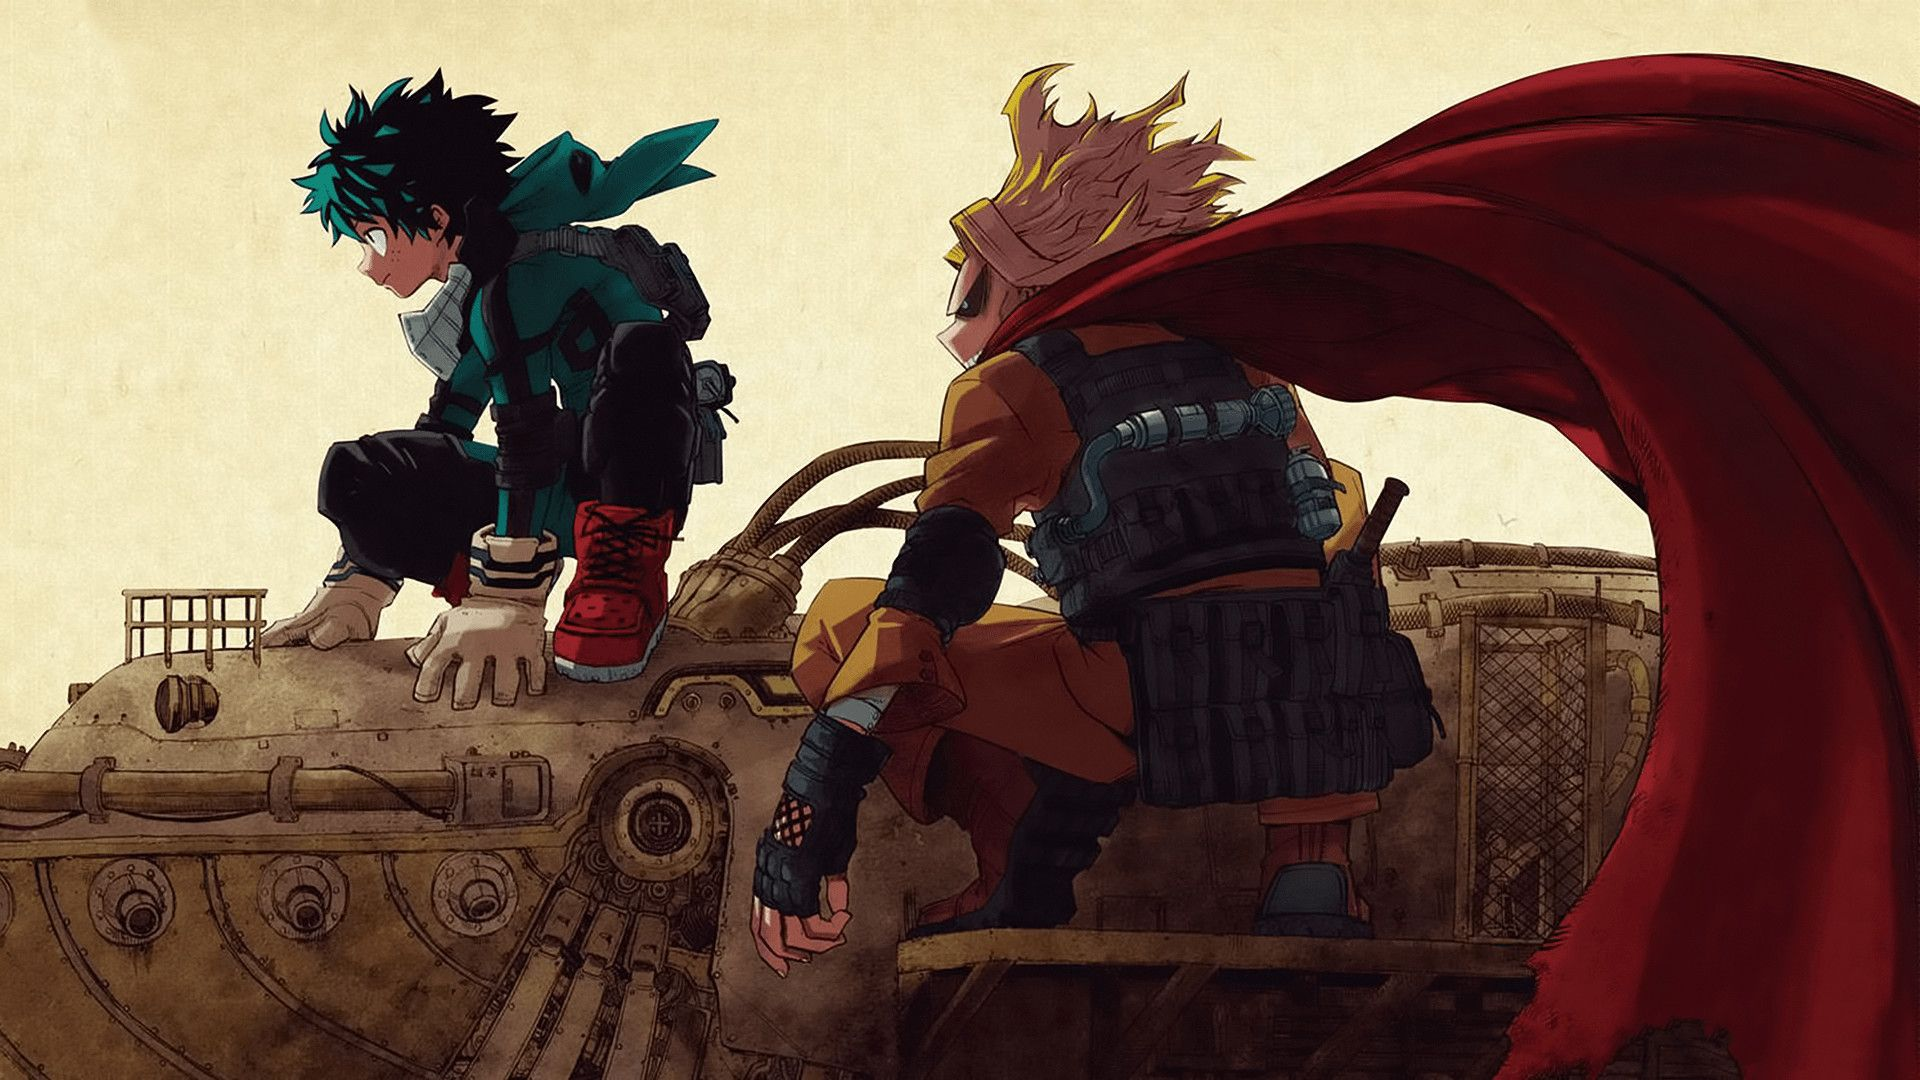 My Hero Academia Wallpaper Images 2 Hd Wallpapers Buzz